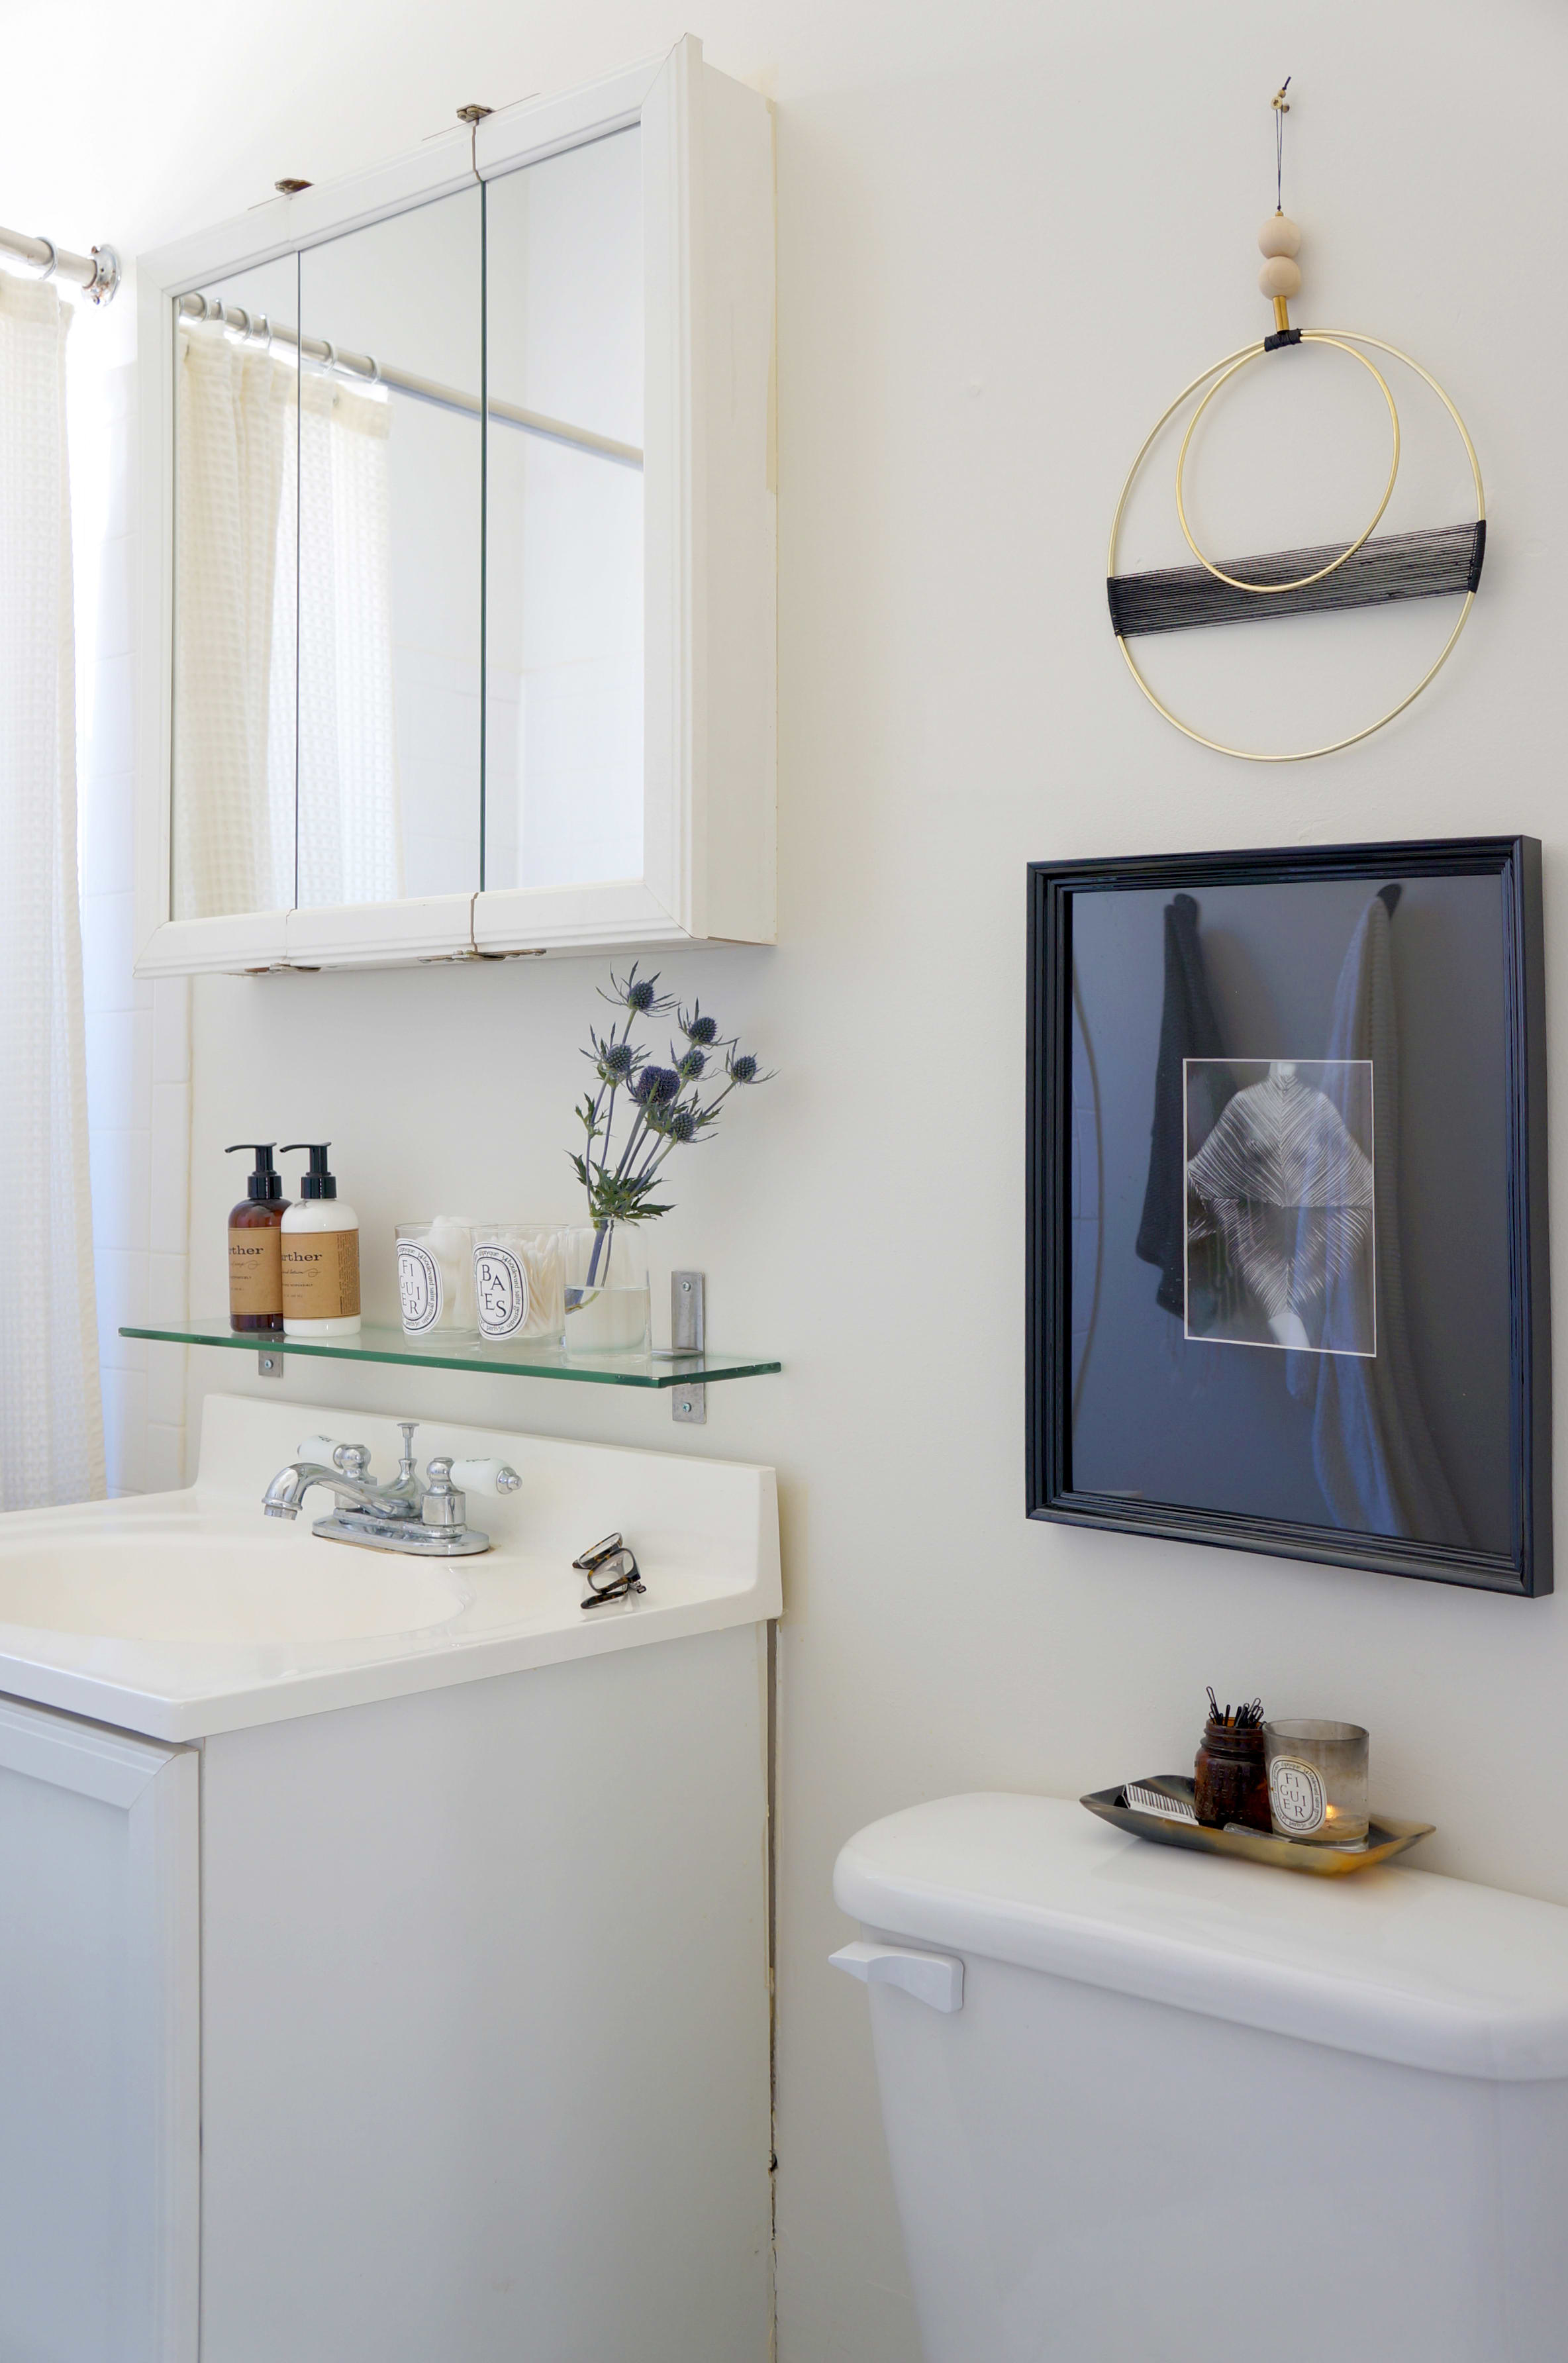 8 Stylish Solutions for Ugly Rental Bathrooms | Apartment Therapy on family room, awful family, awful house, living room, awful hotel room, awful car, awful parking, dining room, bathroom cabinet, awful food, wine cellar,